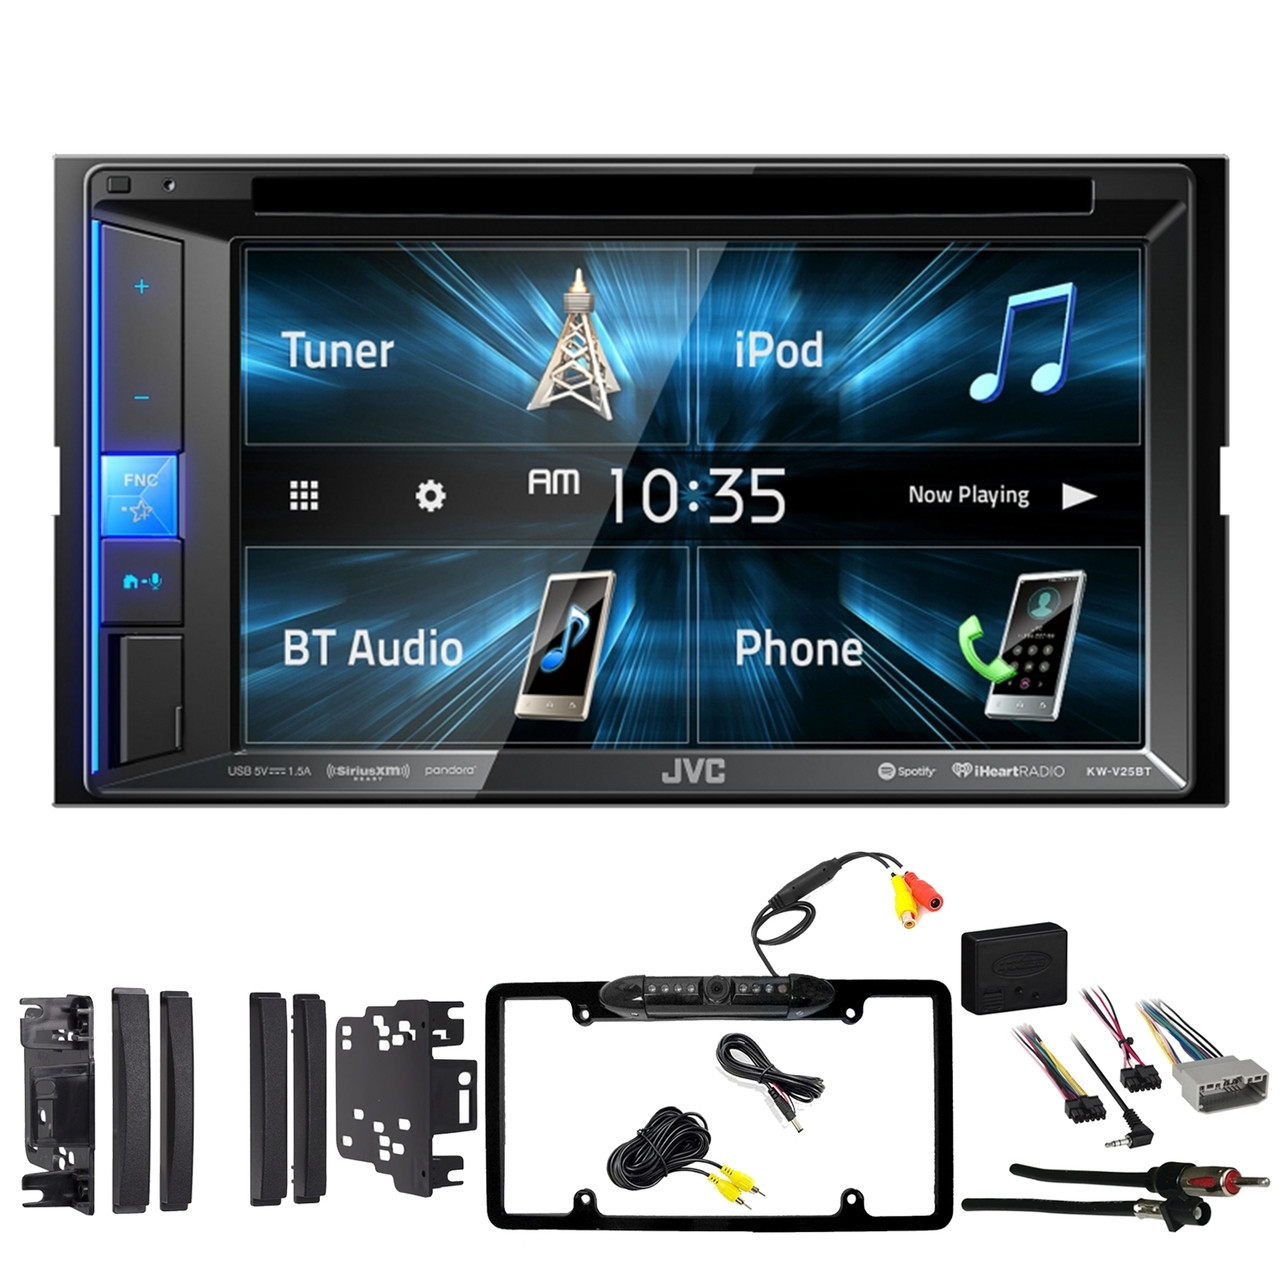 hight resolution of jvc kw v25bt 6 2 double din bluetooth touchscreen stereo receiver metra dash kit for select 2007 up chrysler vehicles wiring interface antenna adapter